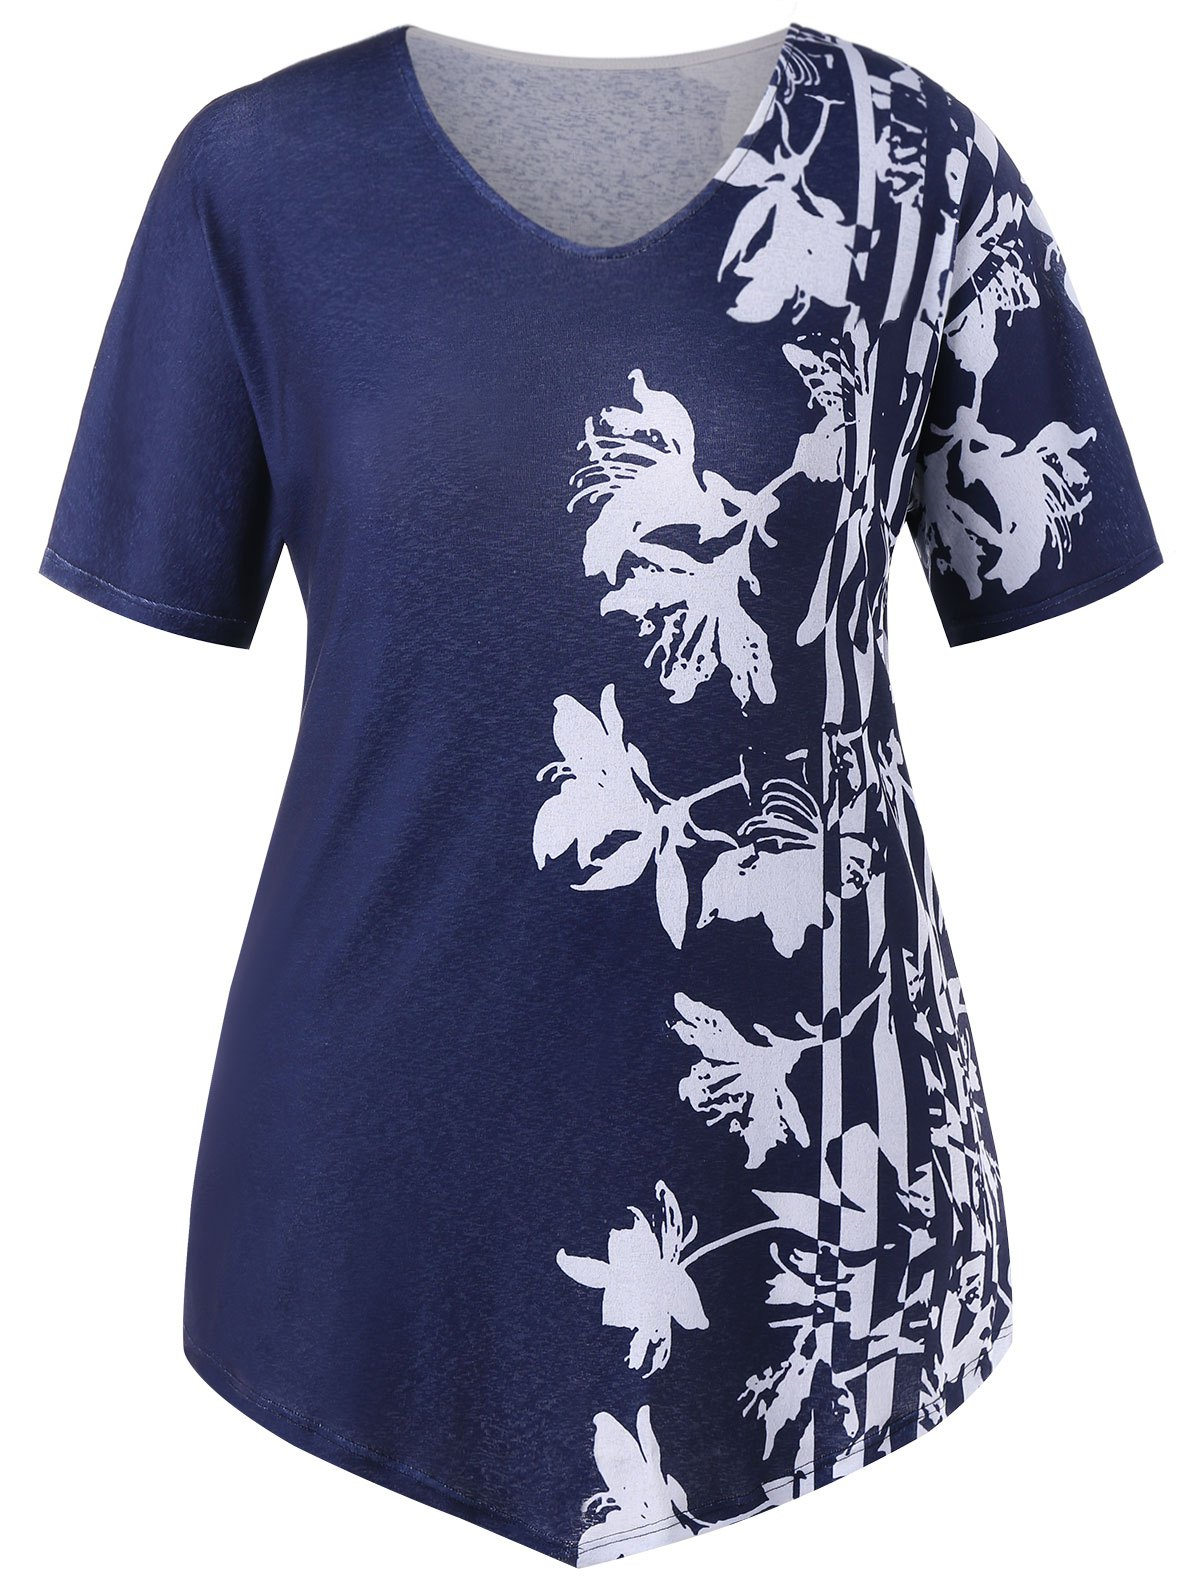 Shop Plus Size V Neck Floral T-shirt